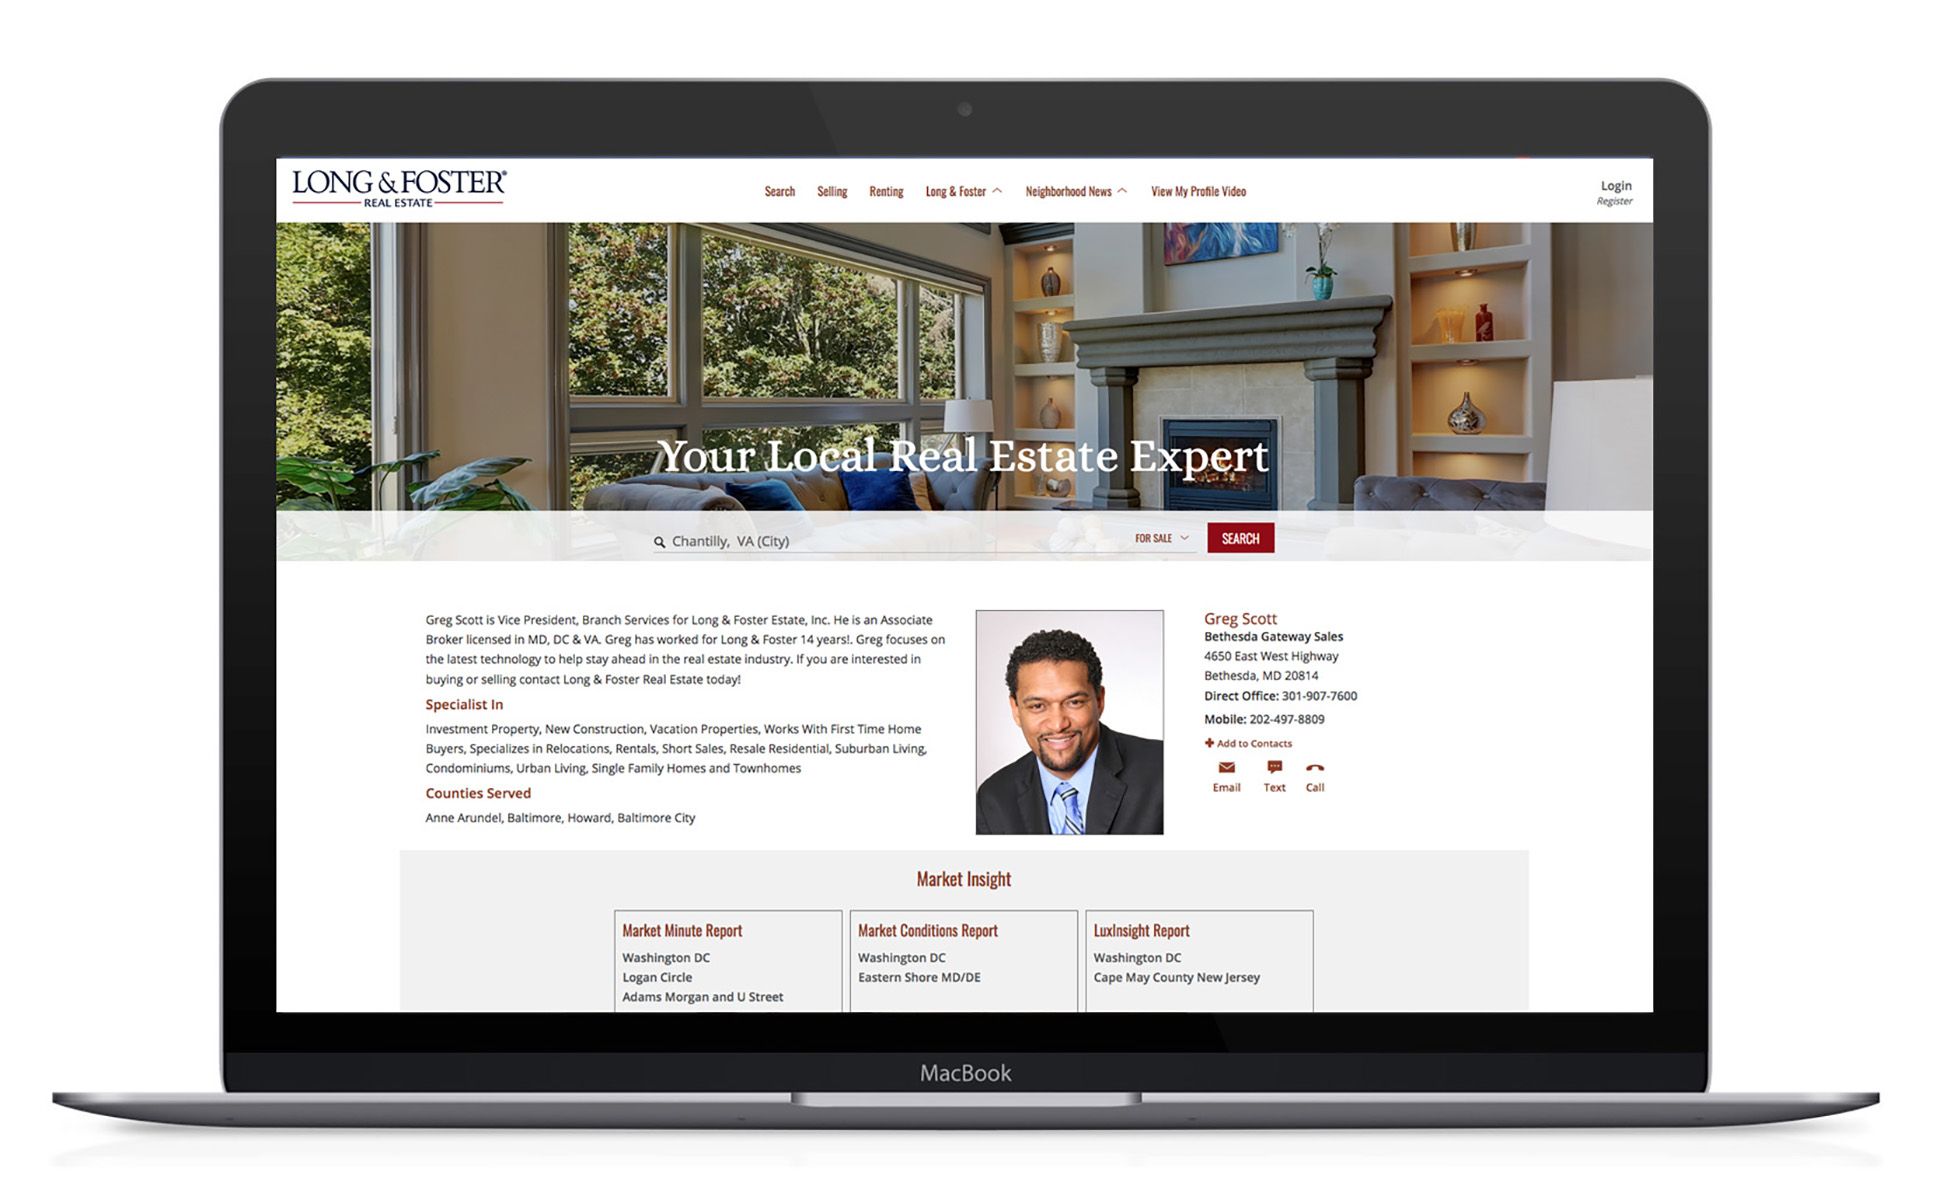 Long & Foster New Agent Websites